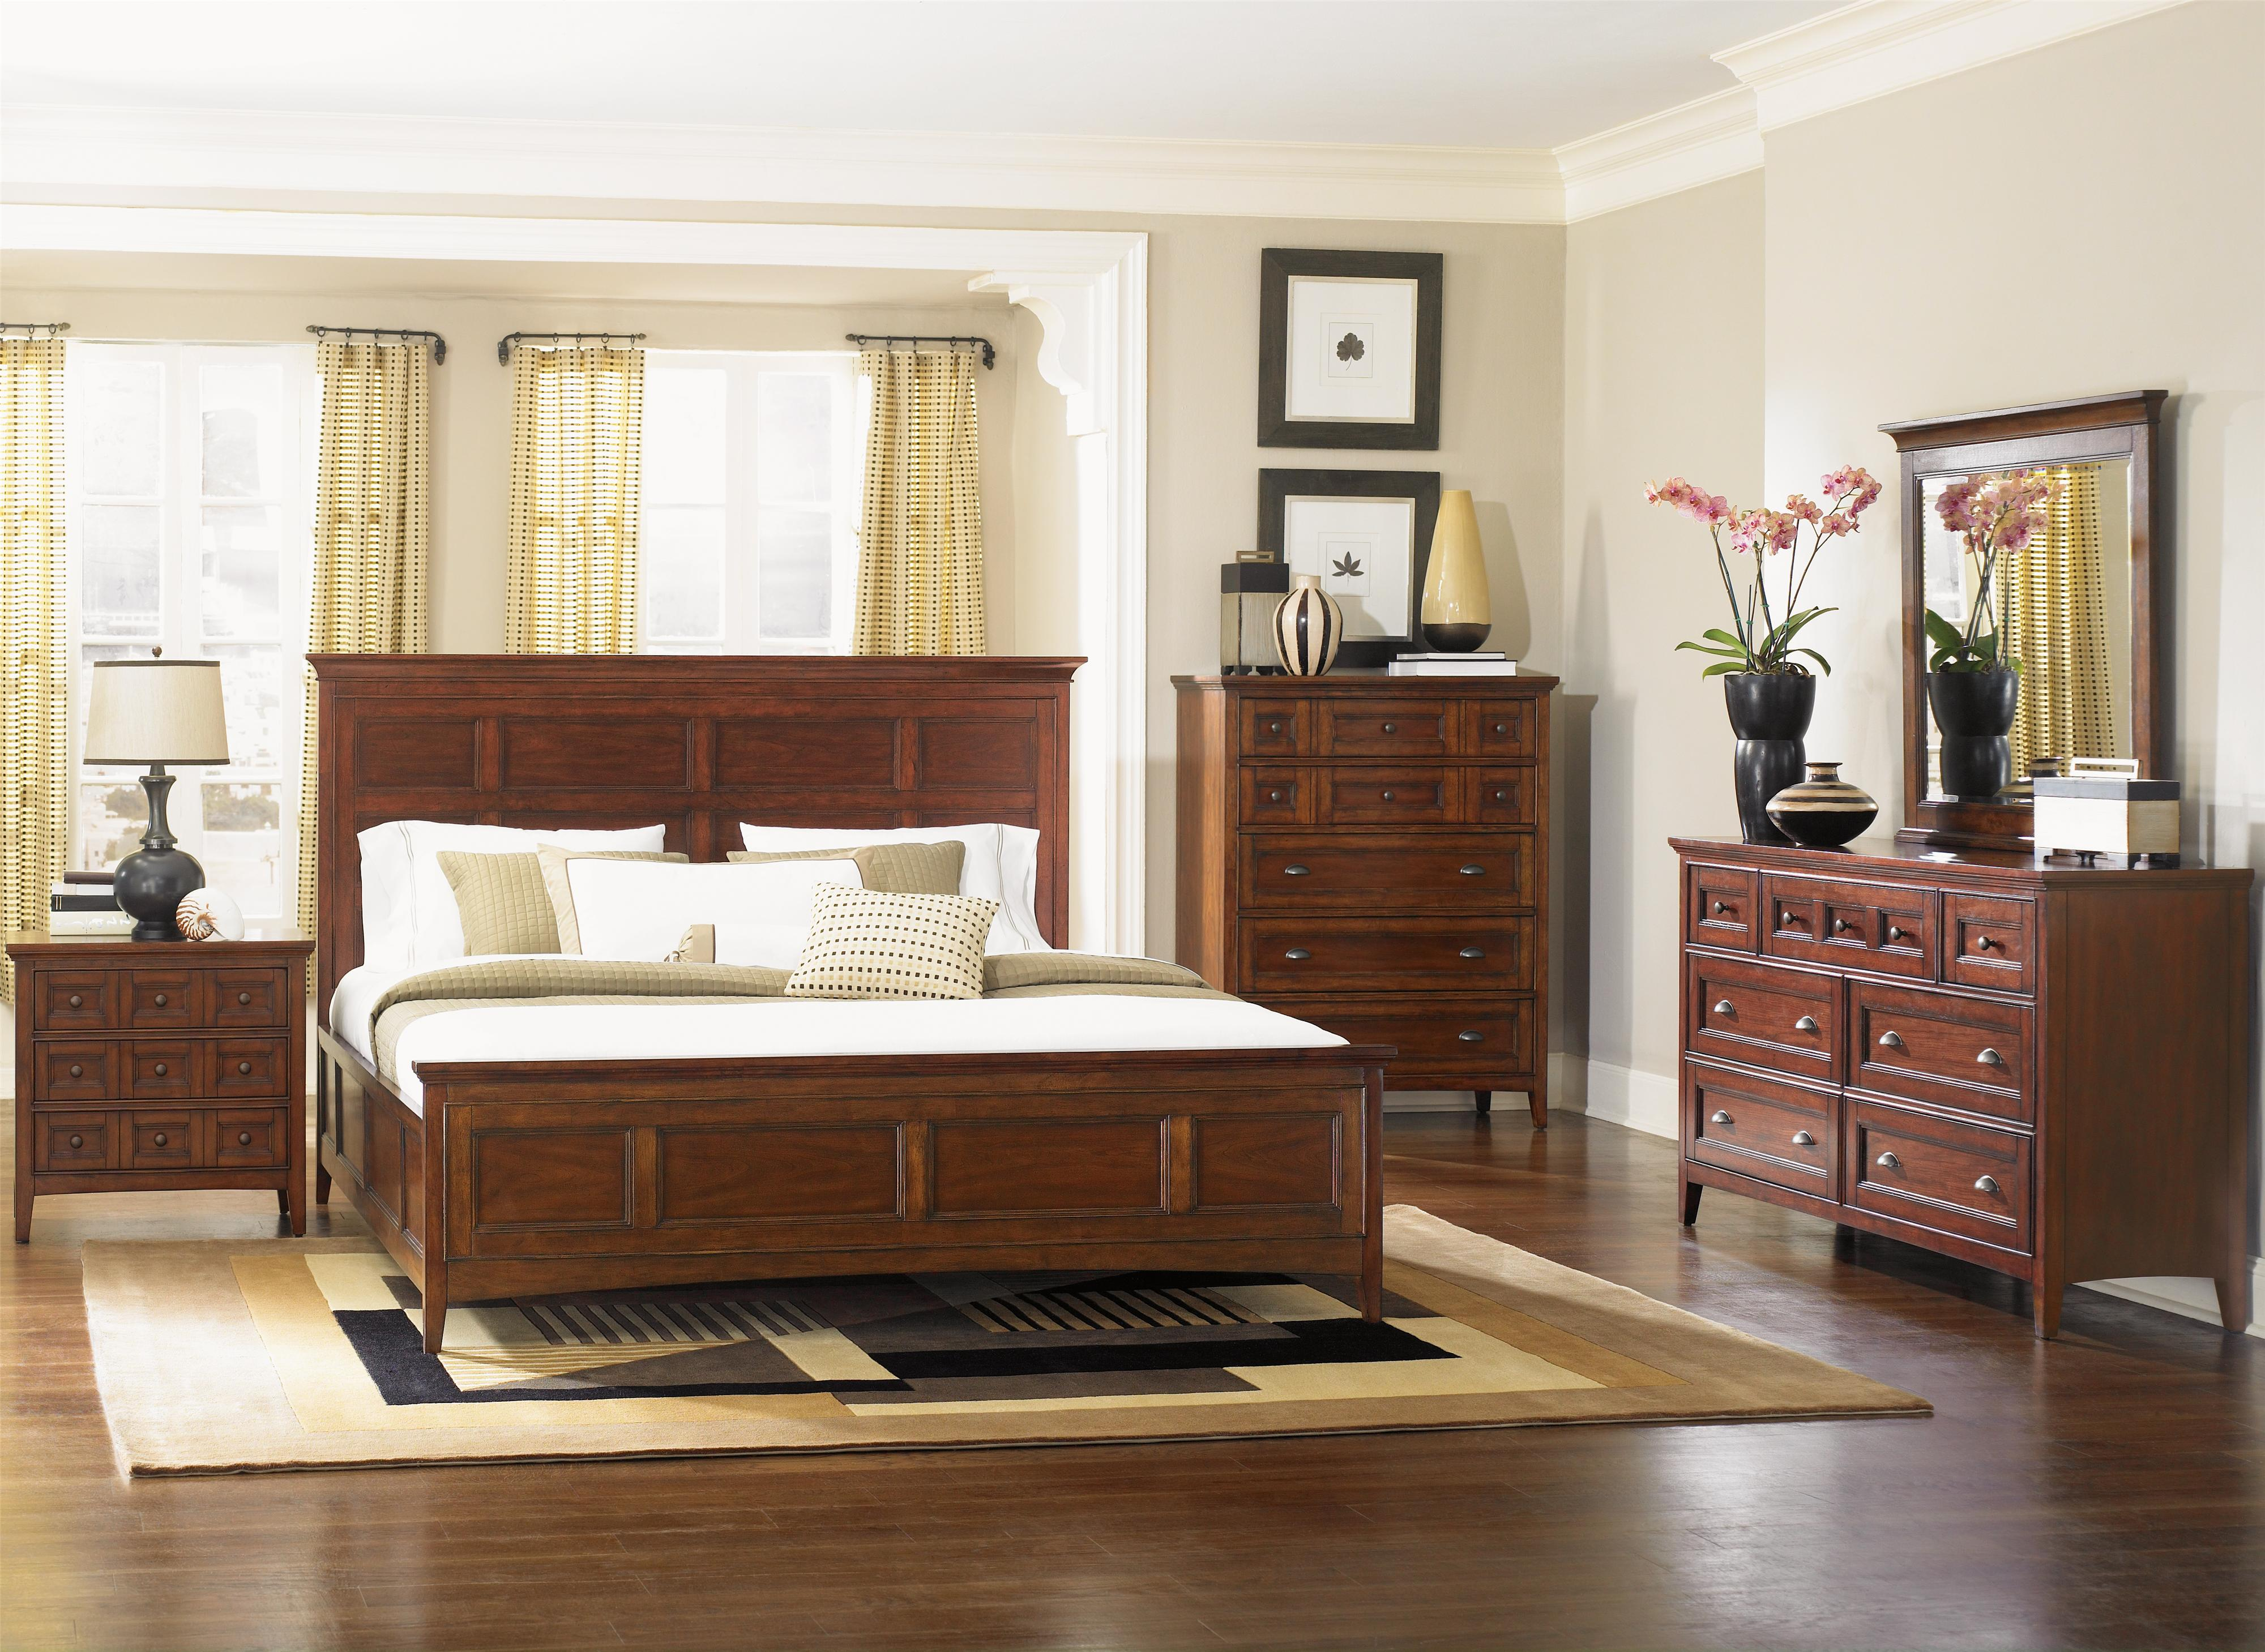 Magnussen Home Harrison California King Bedroom Group - Item Number: B1398 CK Bedroom Group 1